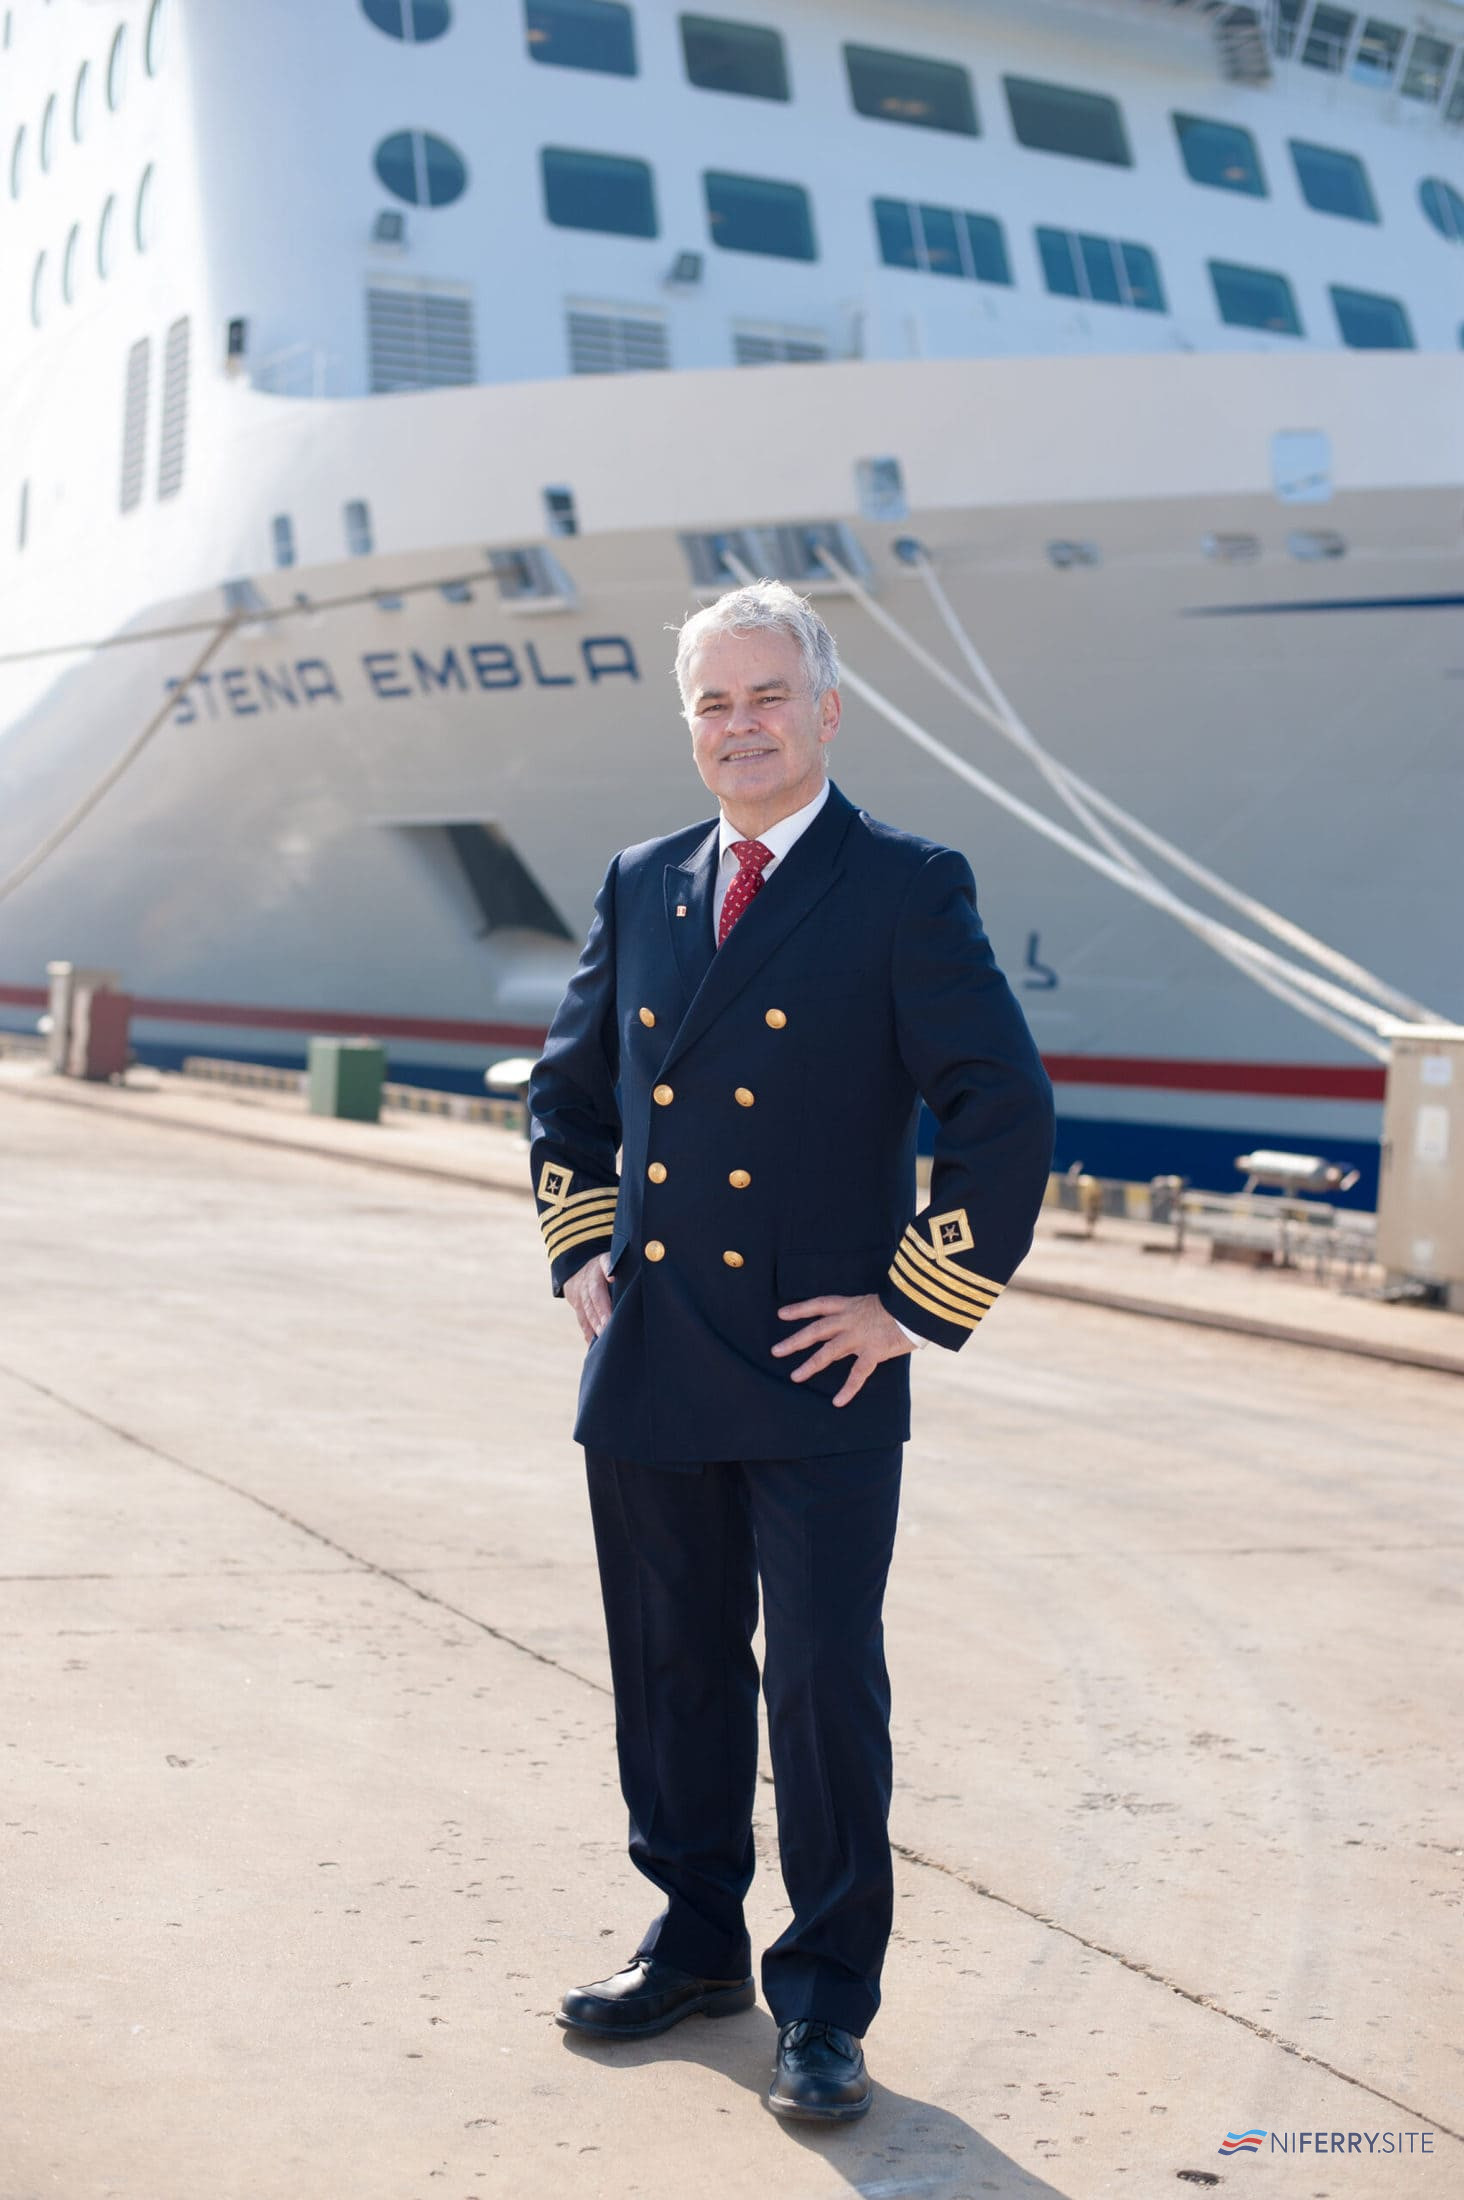 Senior Master Captain Neill Whittaker with STENA EMBLA. Stena Line